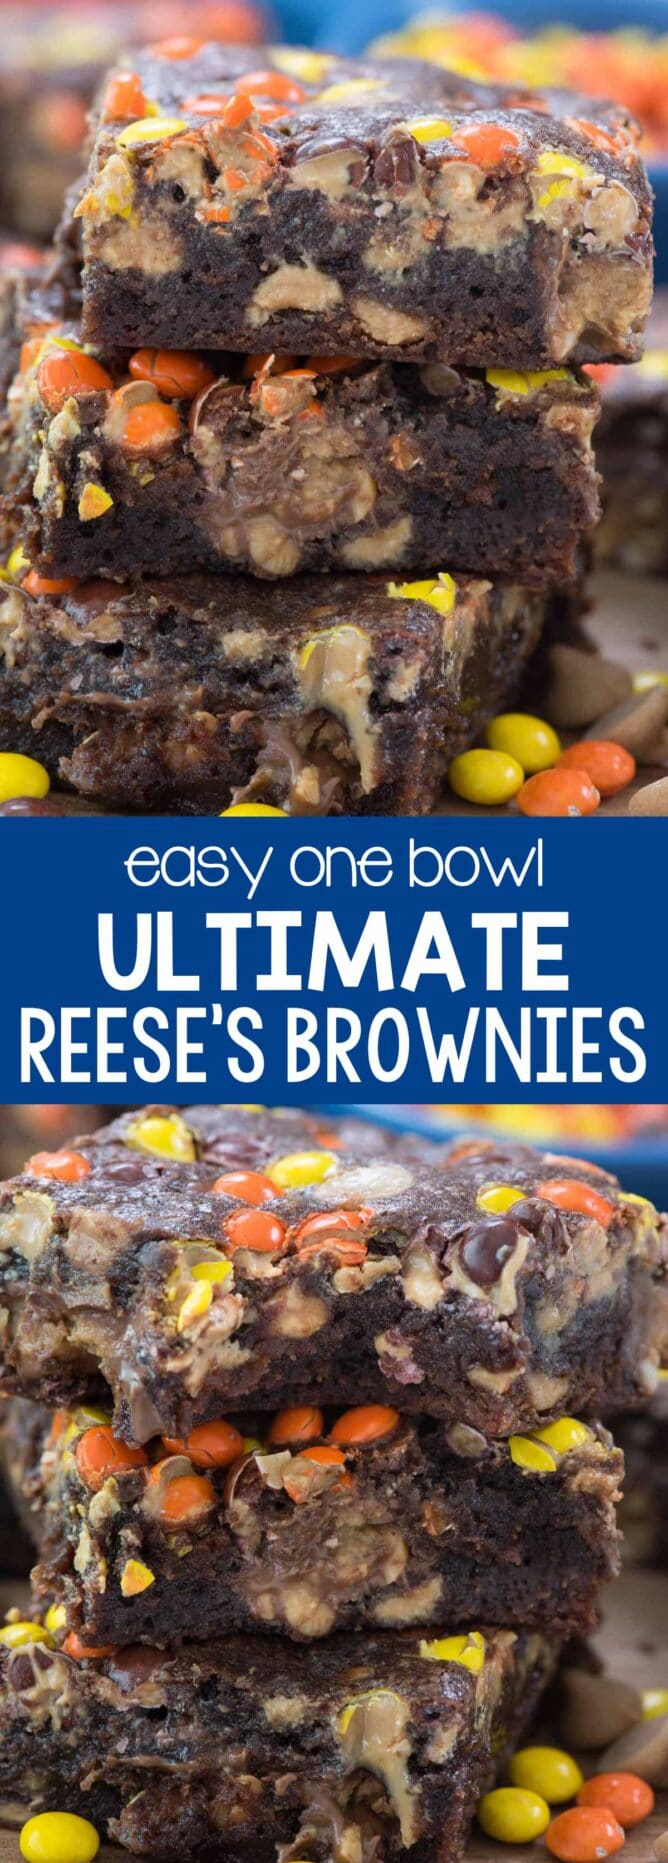 resses brownies in a stack collage